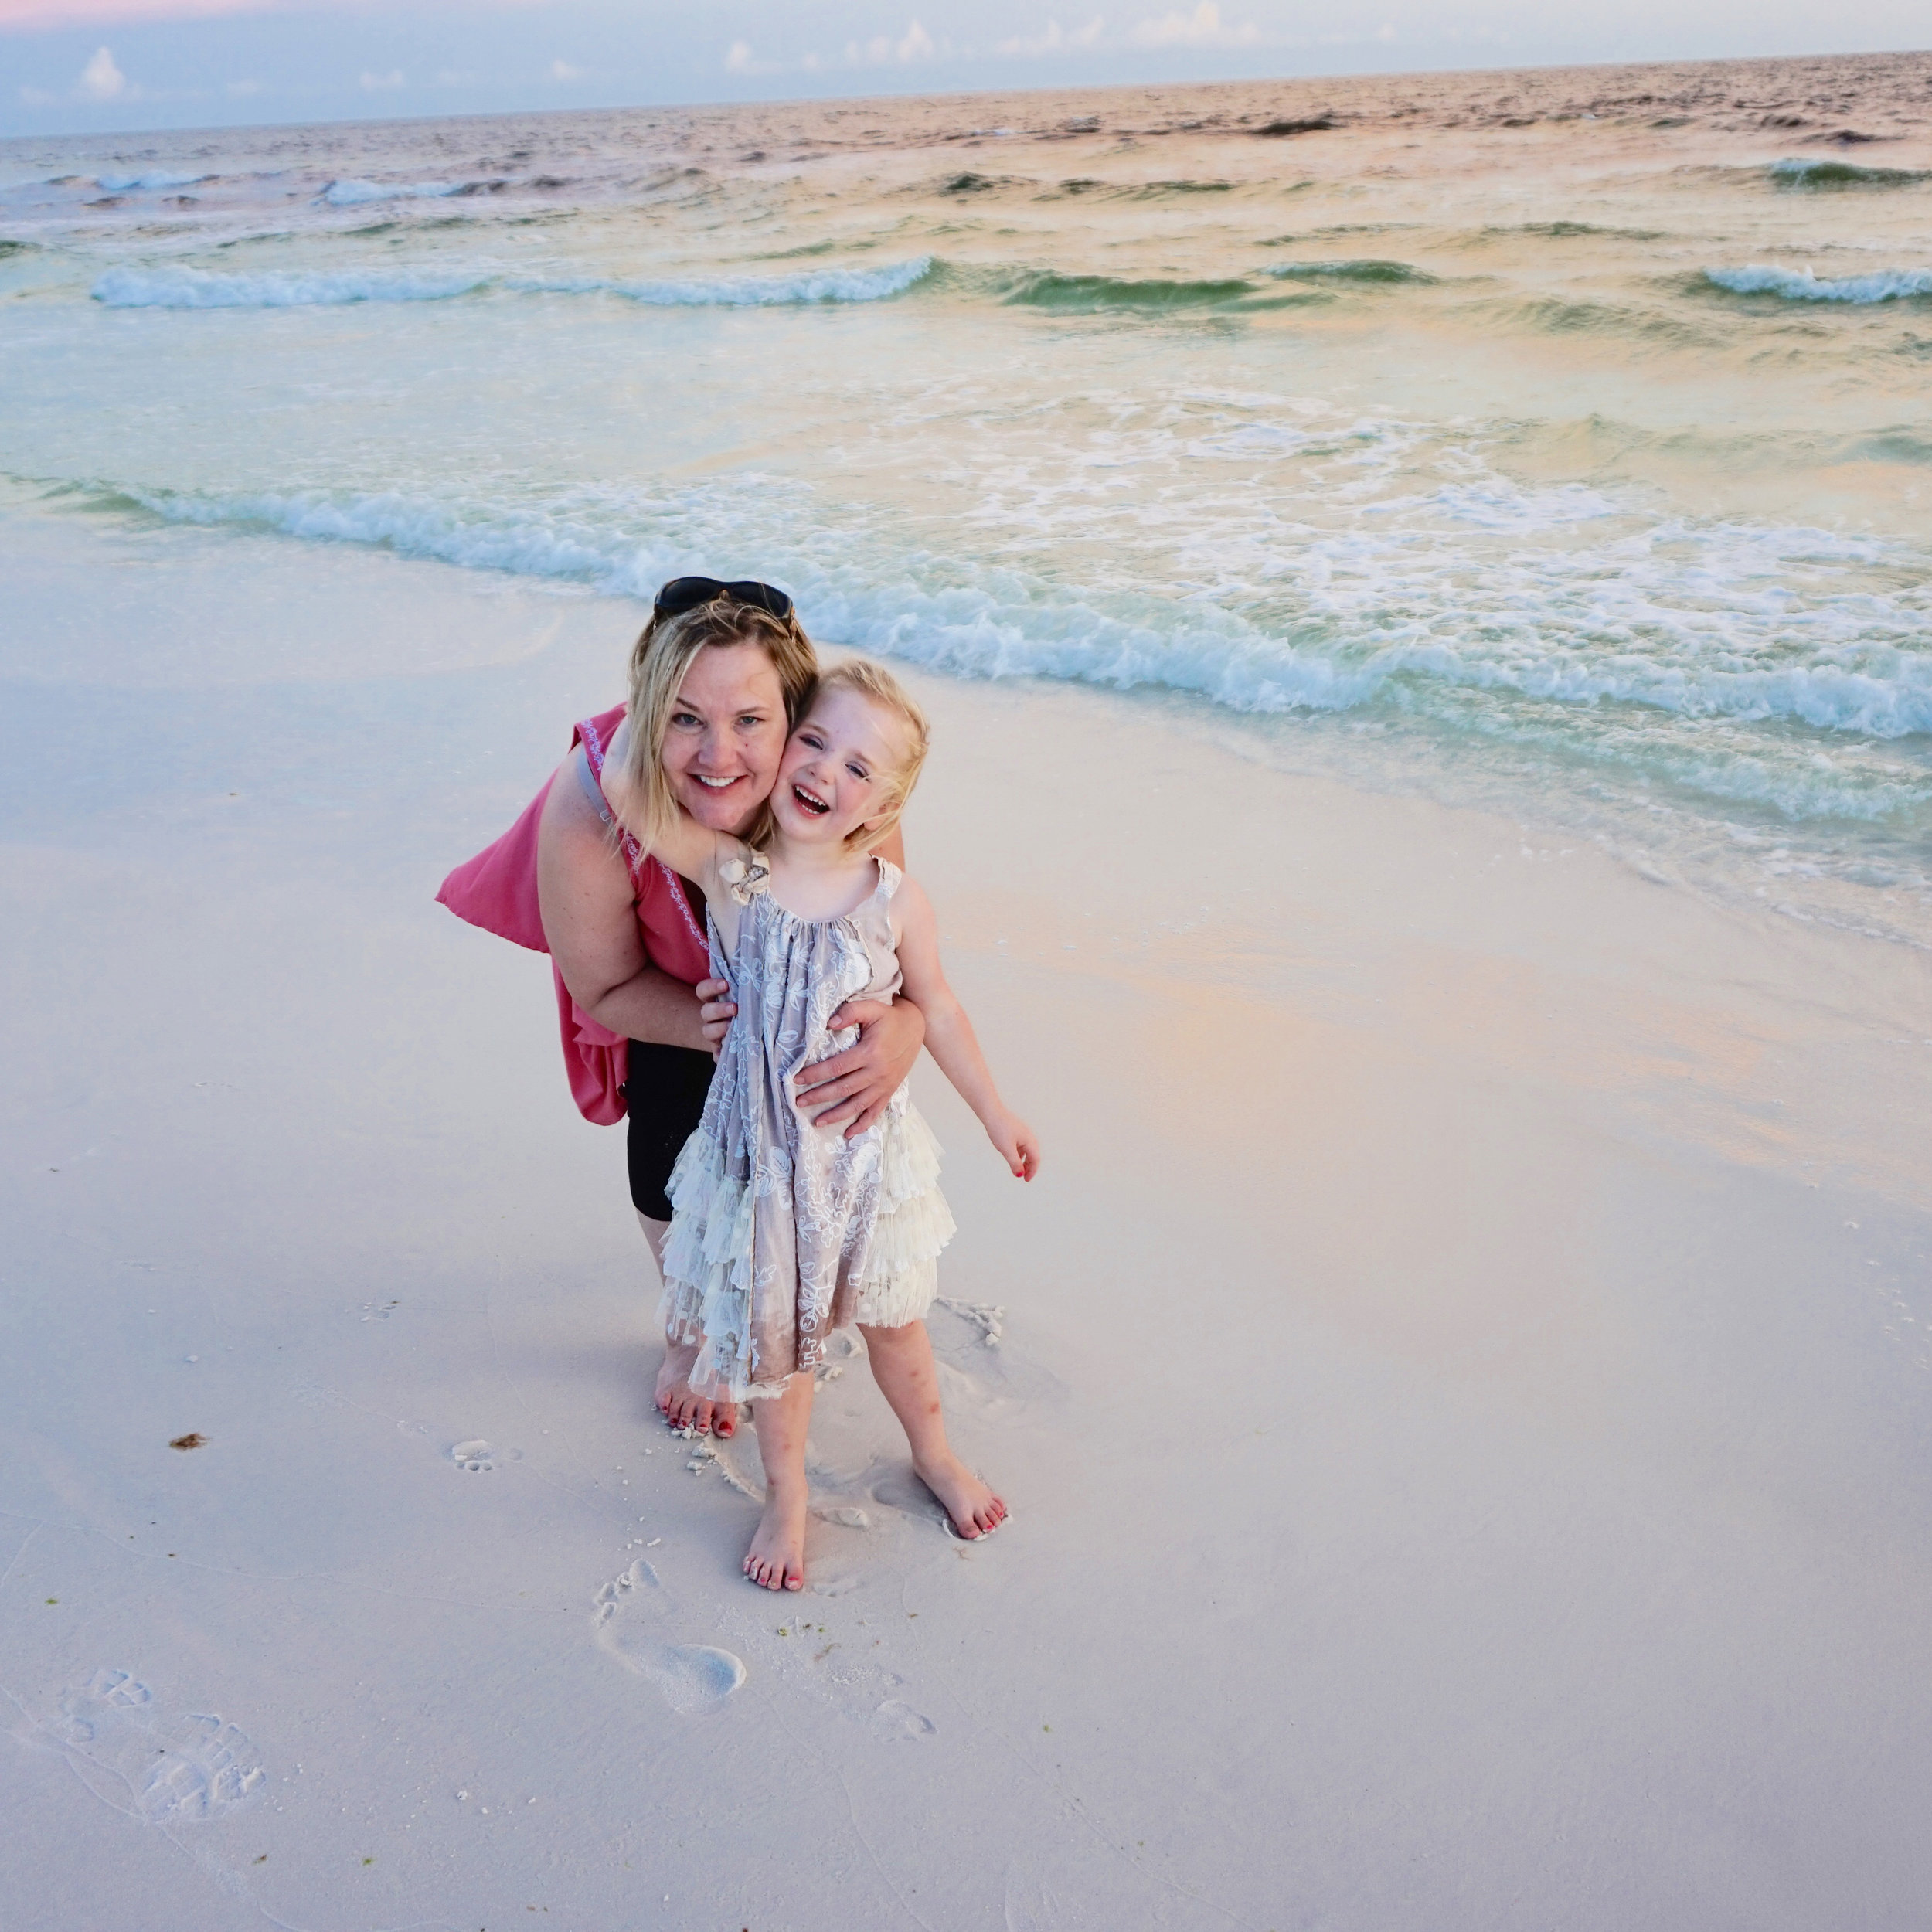 ^ While on a family vacation in 2016, Melanie and Piper visited Blue Mountain Beach in Florida.